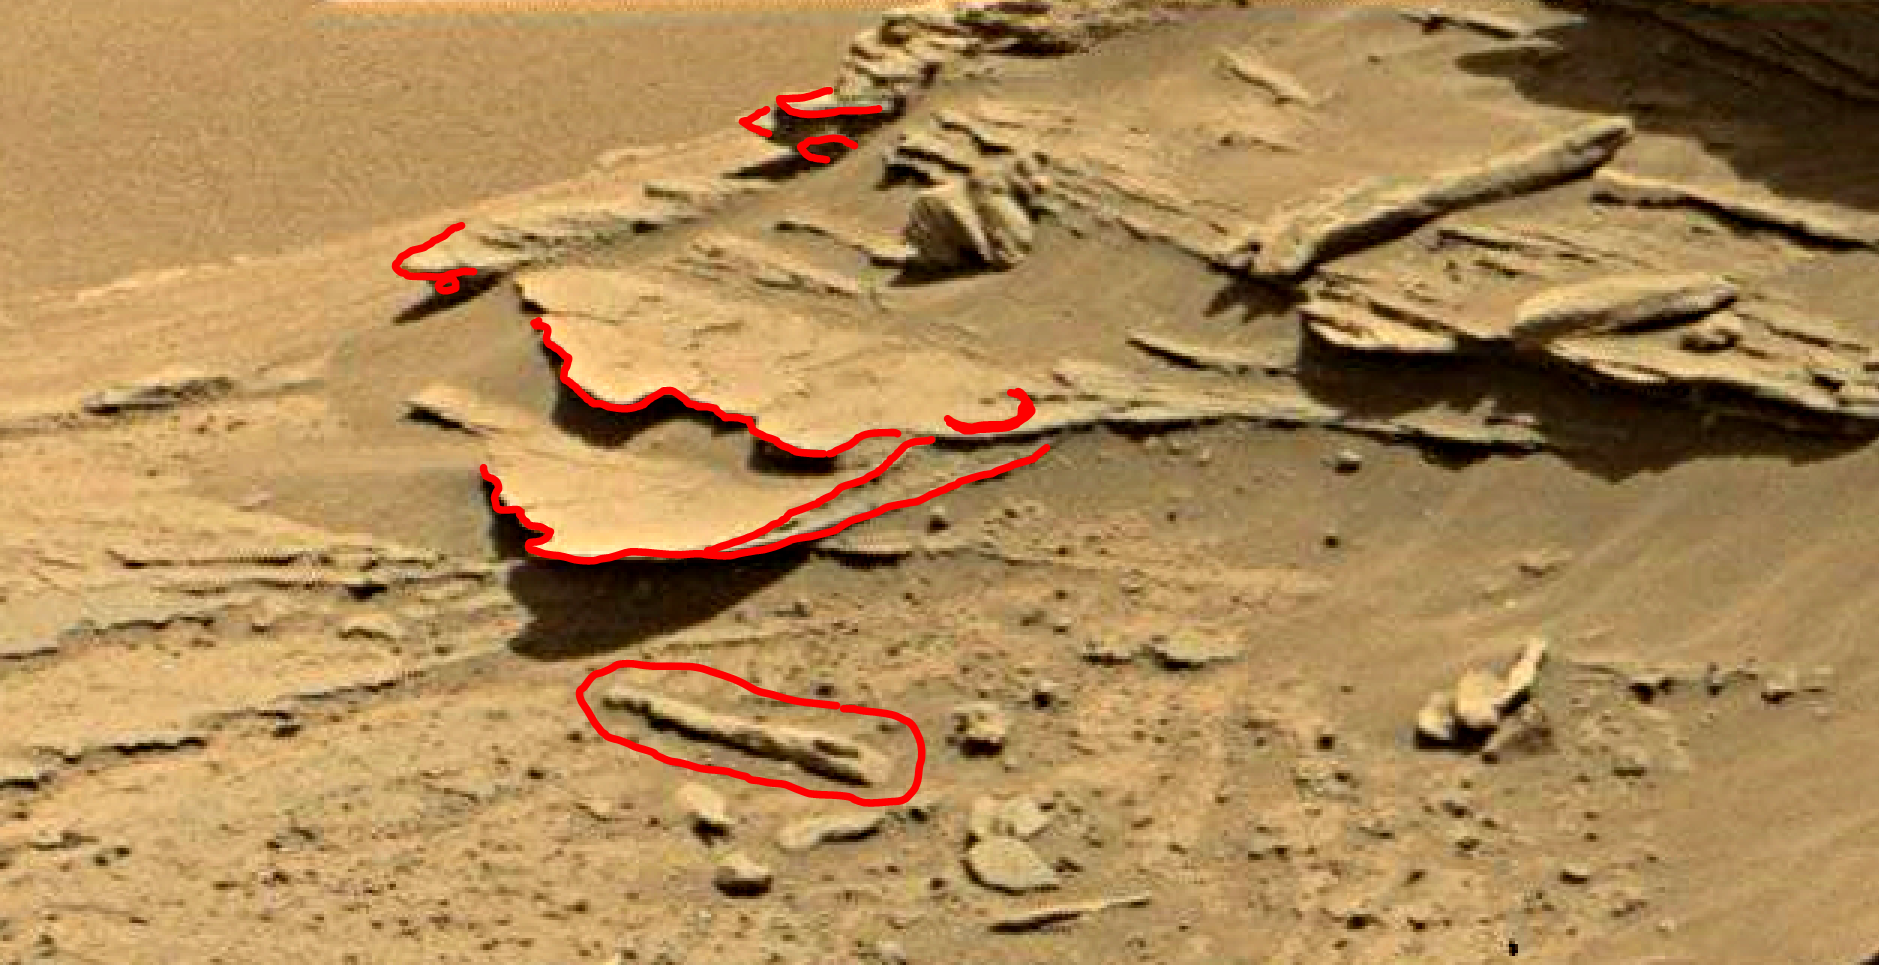 mars sol 1346 anomaly-artifacts 13a was life on mars